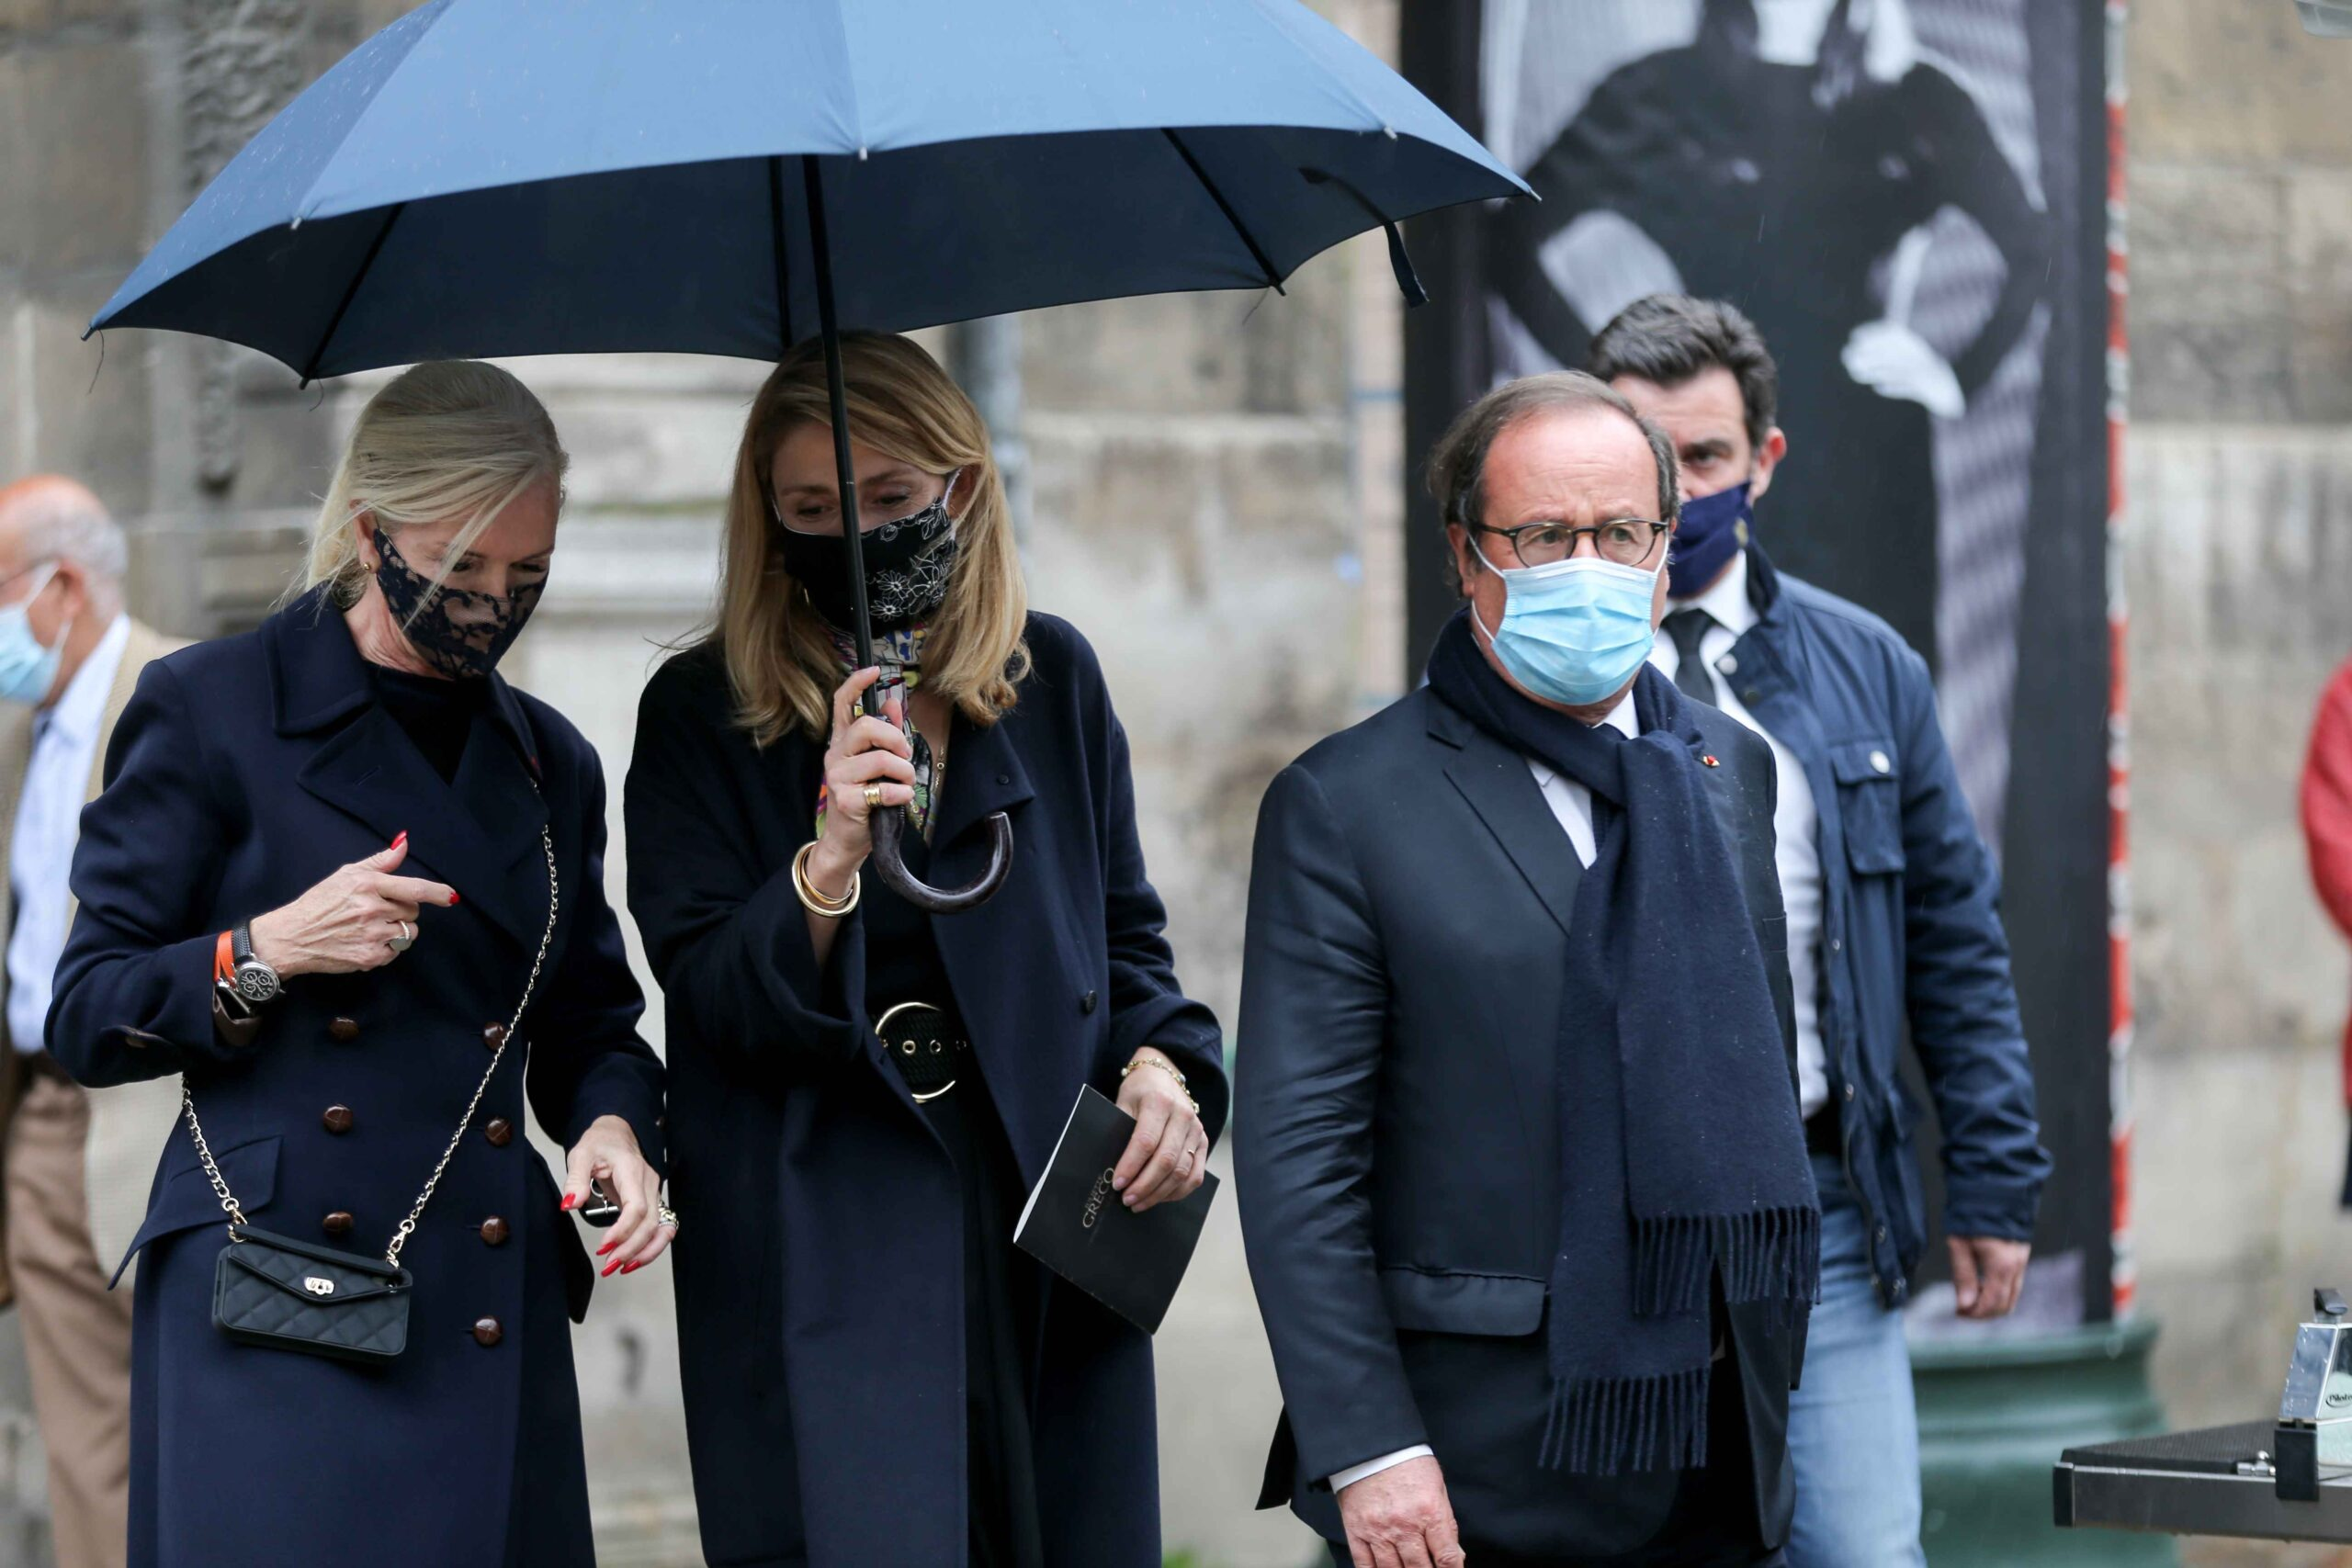 Former French President Francois Hollande (2R) and his partner French actress Julie Gayet (2L) leave after attending the funerals of French singer Juliette Greco, at the Saint-Germain-des-Pres church in Paris, on October 5, 2020. Legendary French singer Ju